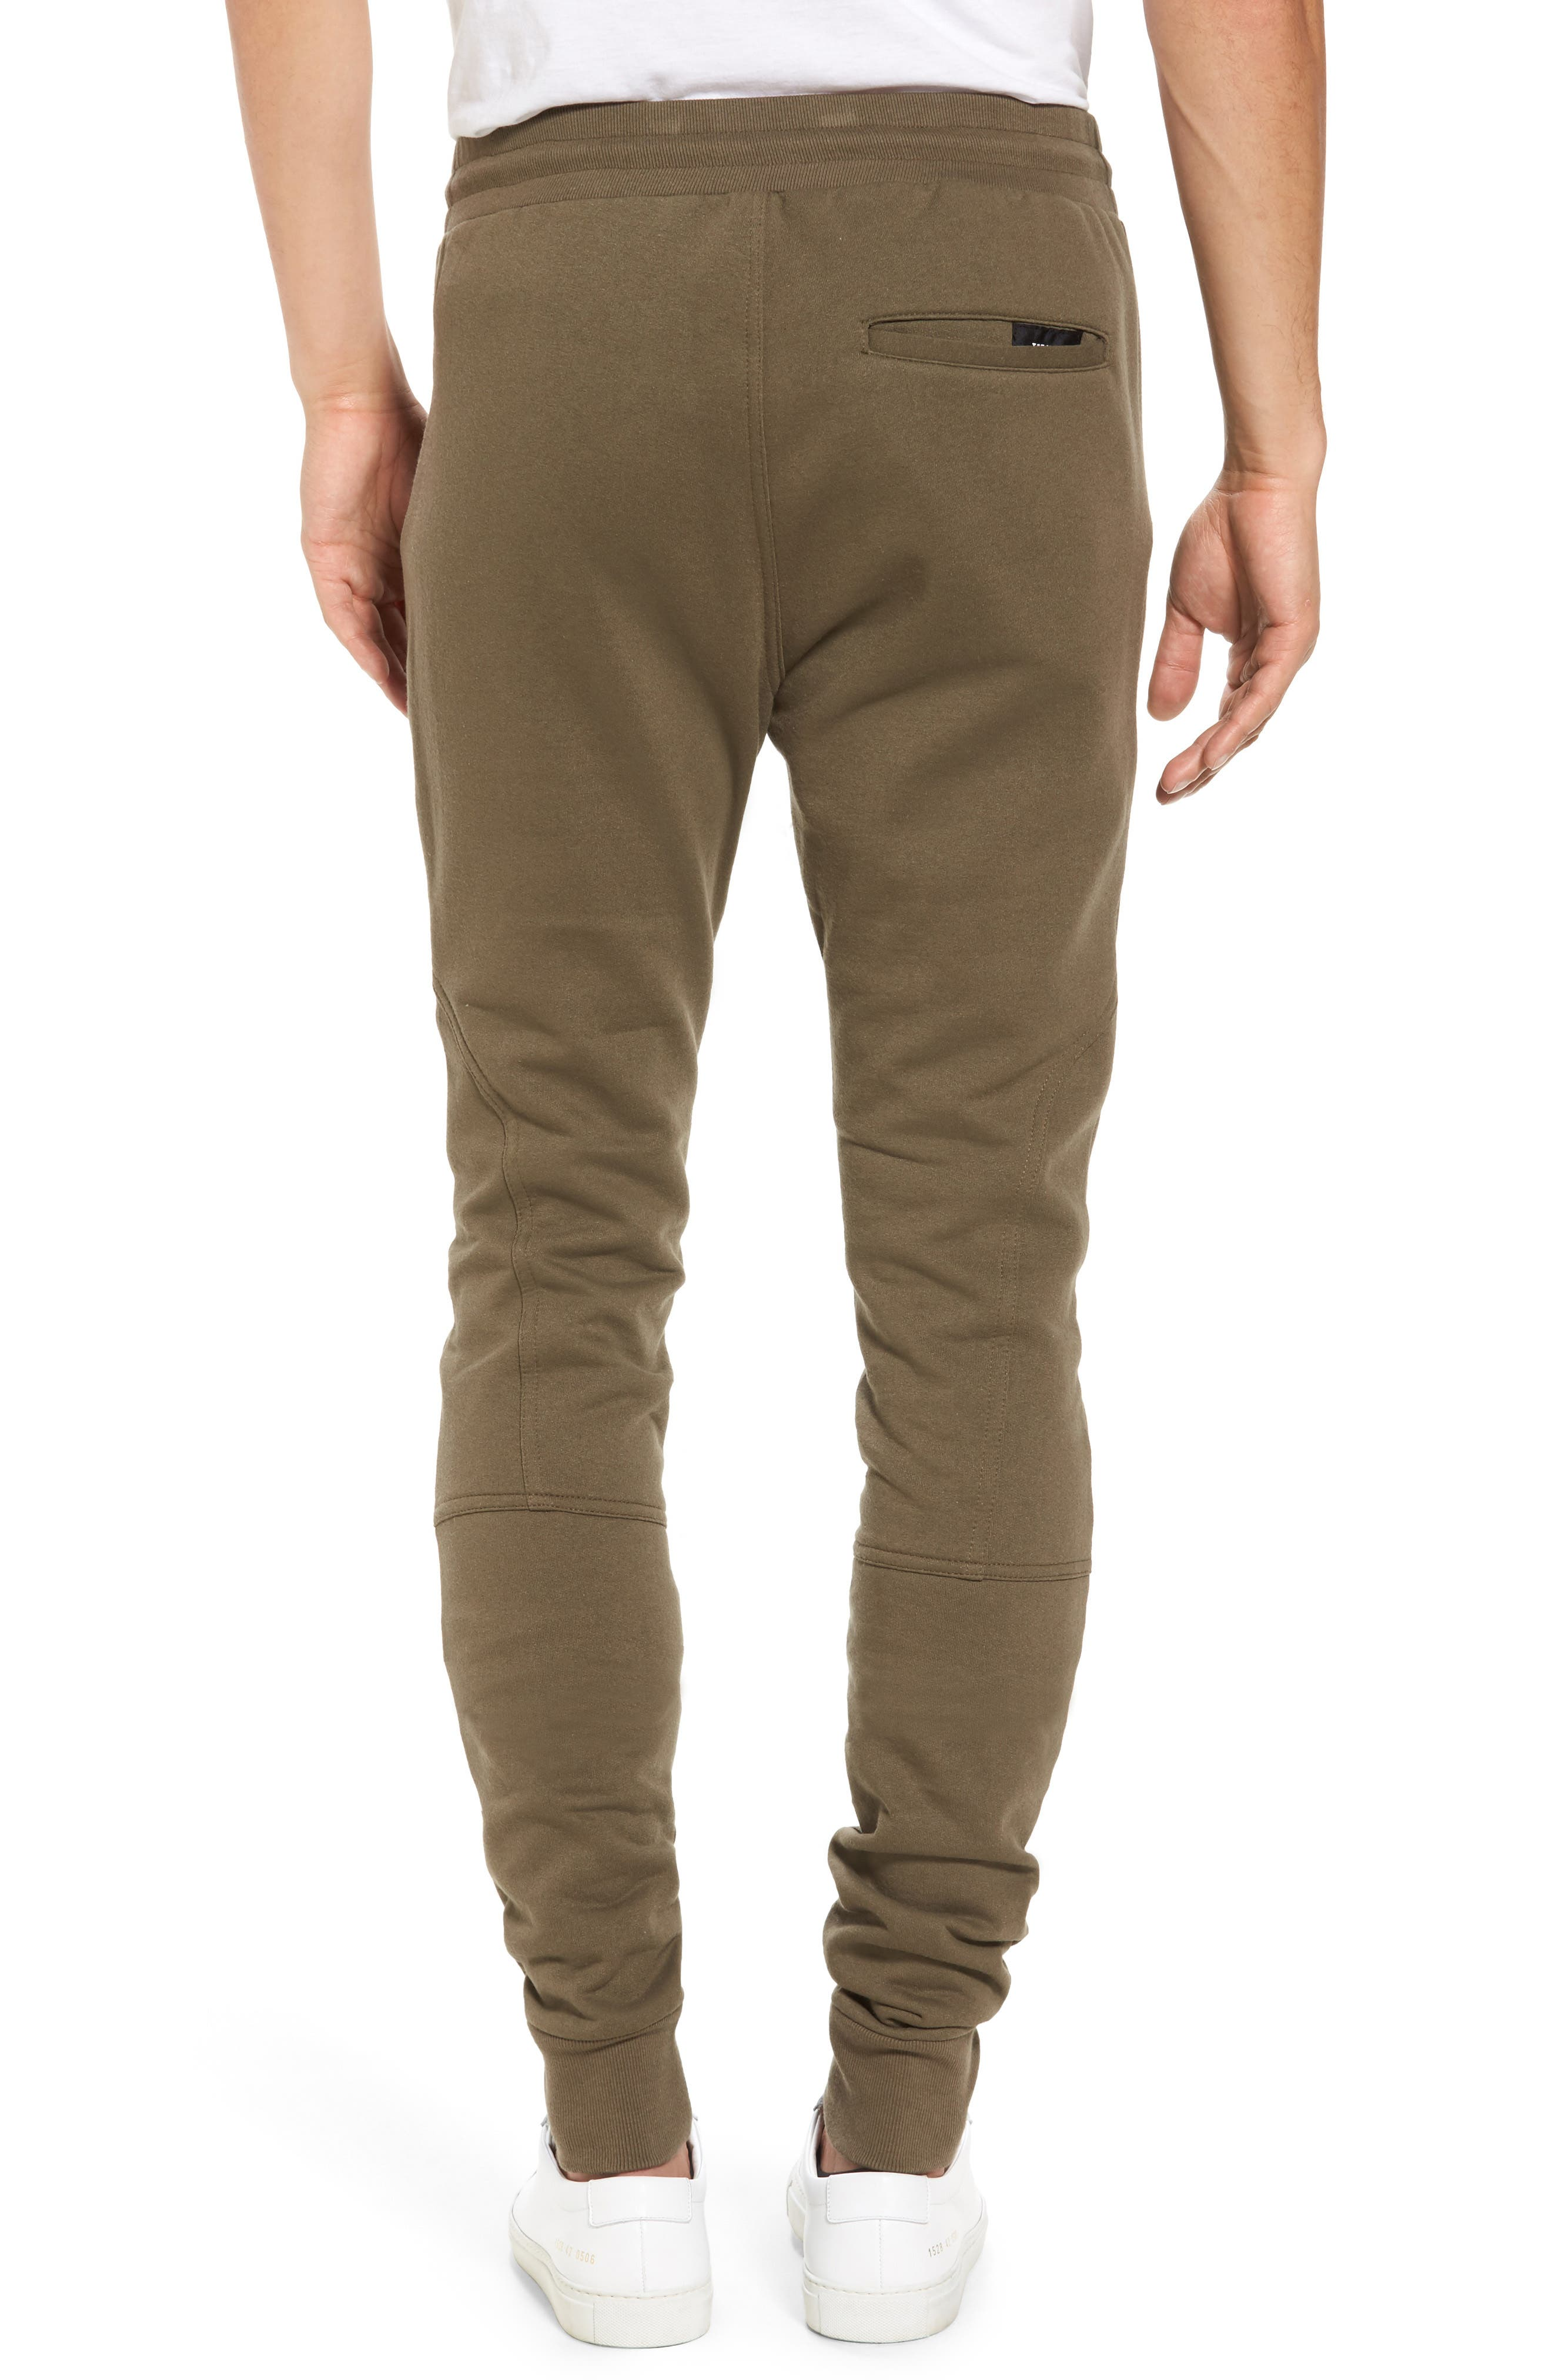 French Terry Sweatpants,                             Alternate thumbnail 2, color,                             Army